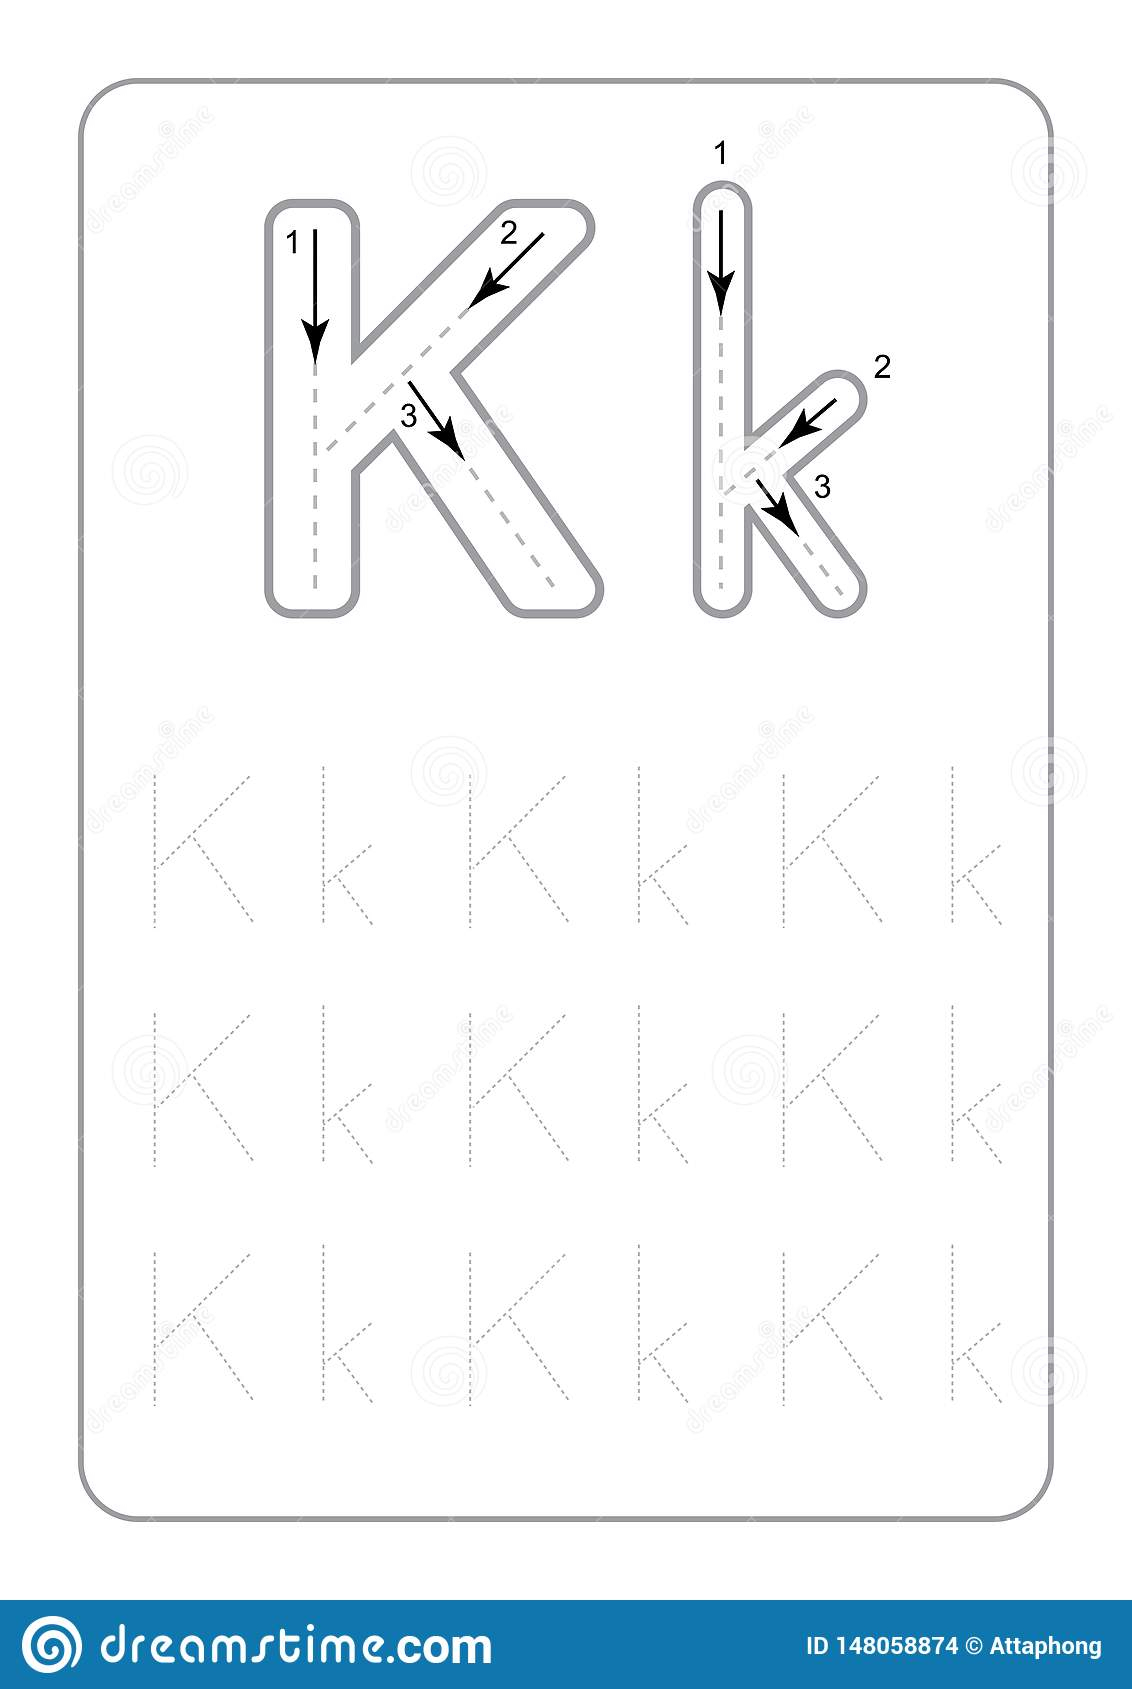 Kindergarten Tracing Letters Worksheets Monochrome Tracing with Kindergarten Tracing Letters And Numbers